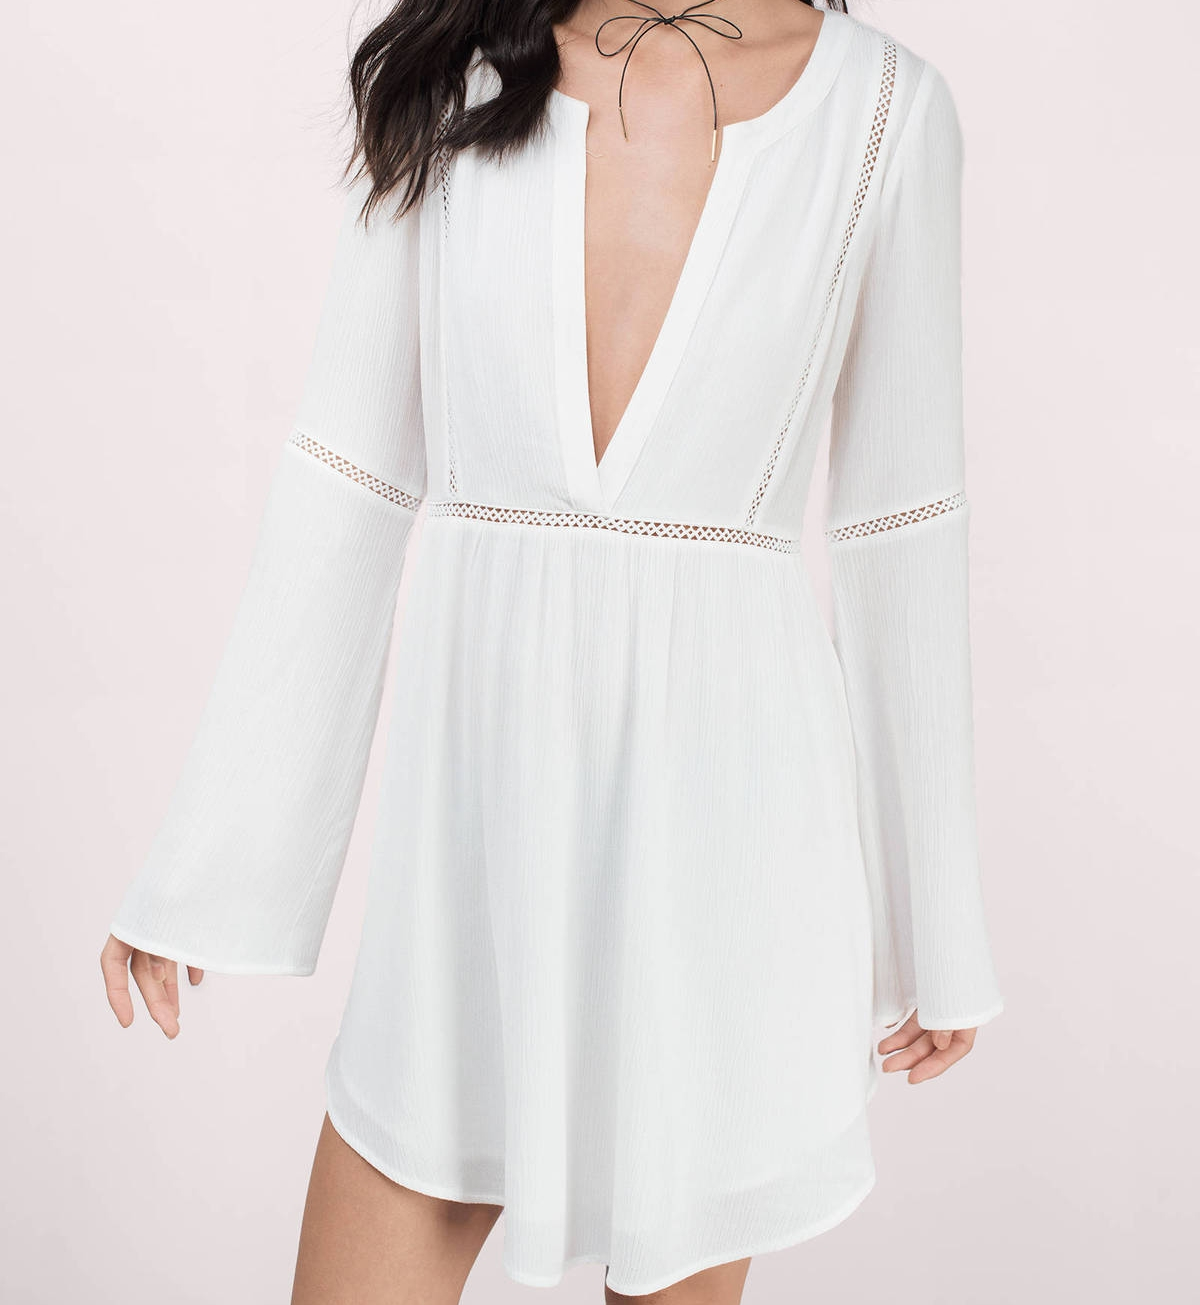 white-trina-plunging-shift-dress@2x.jpg